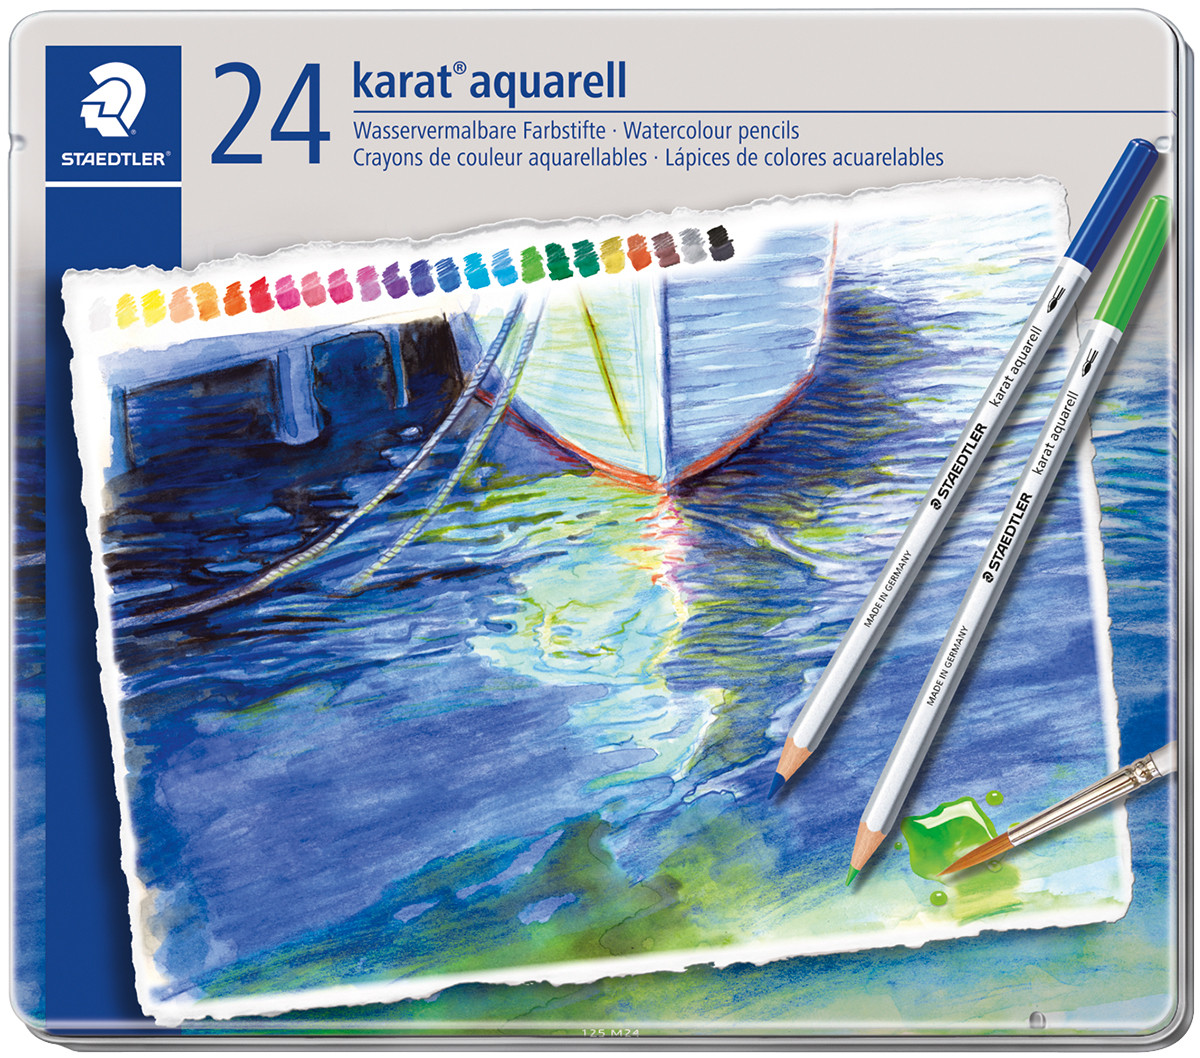 Staedtler Karat Aquarell Watercolour Pencils - Assorted Colours (Tin of 24)